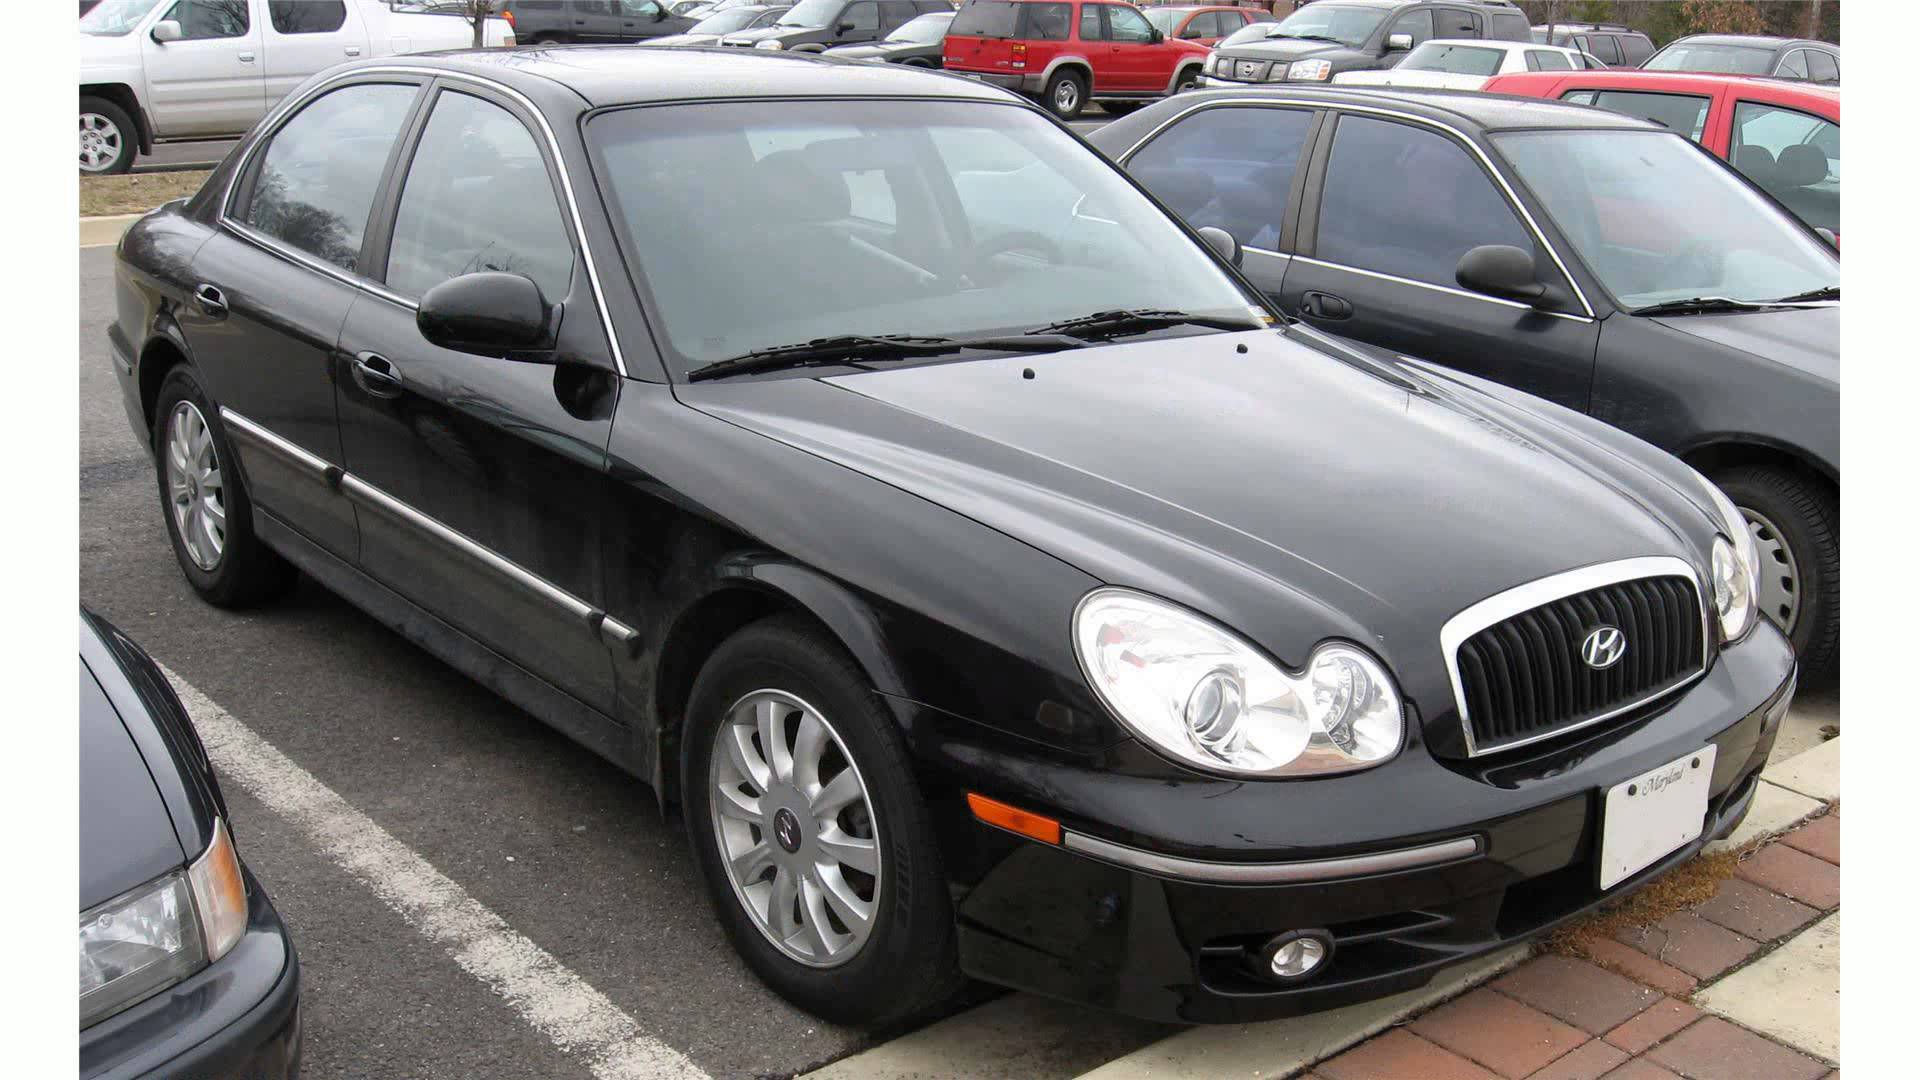 2004 Hyundai Sonata v – pictures, information and specs ...